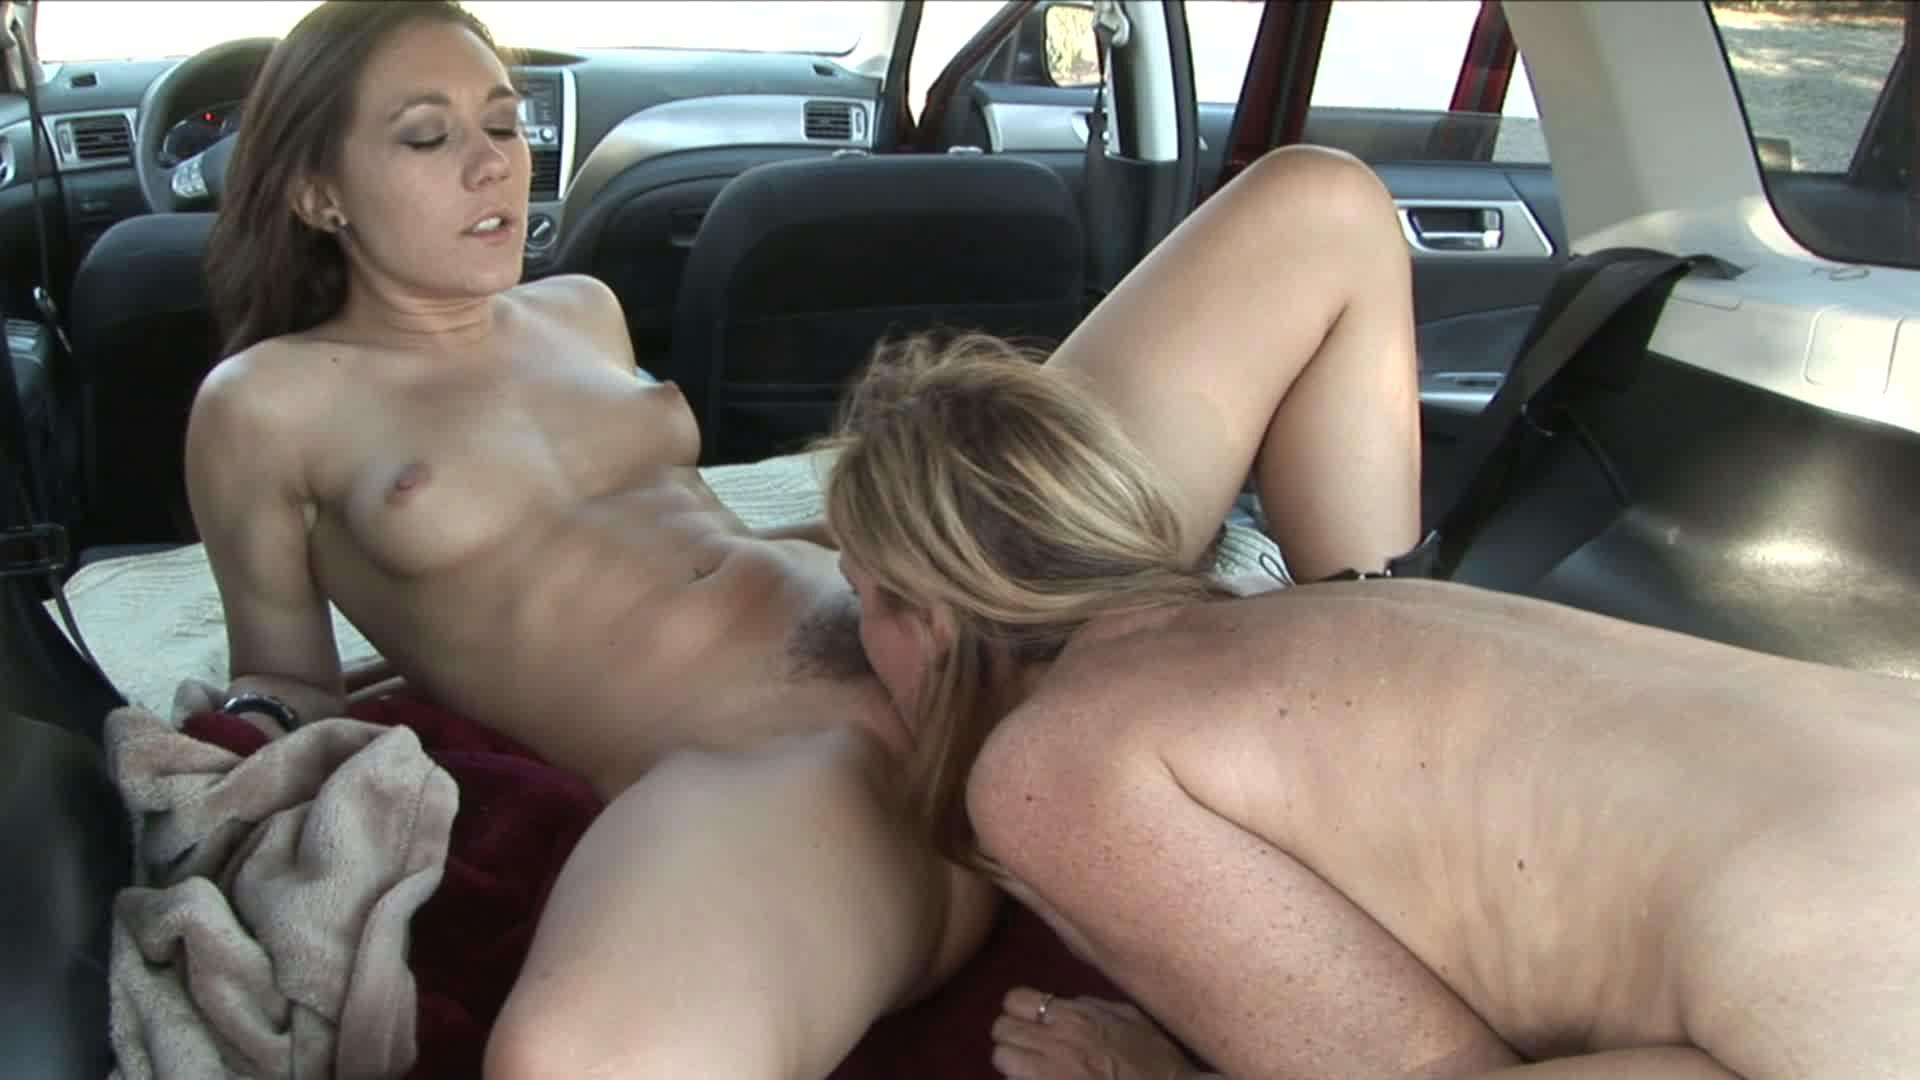 free pics hitchhikers having sex